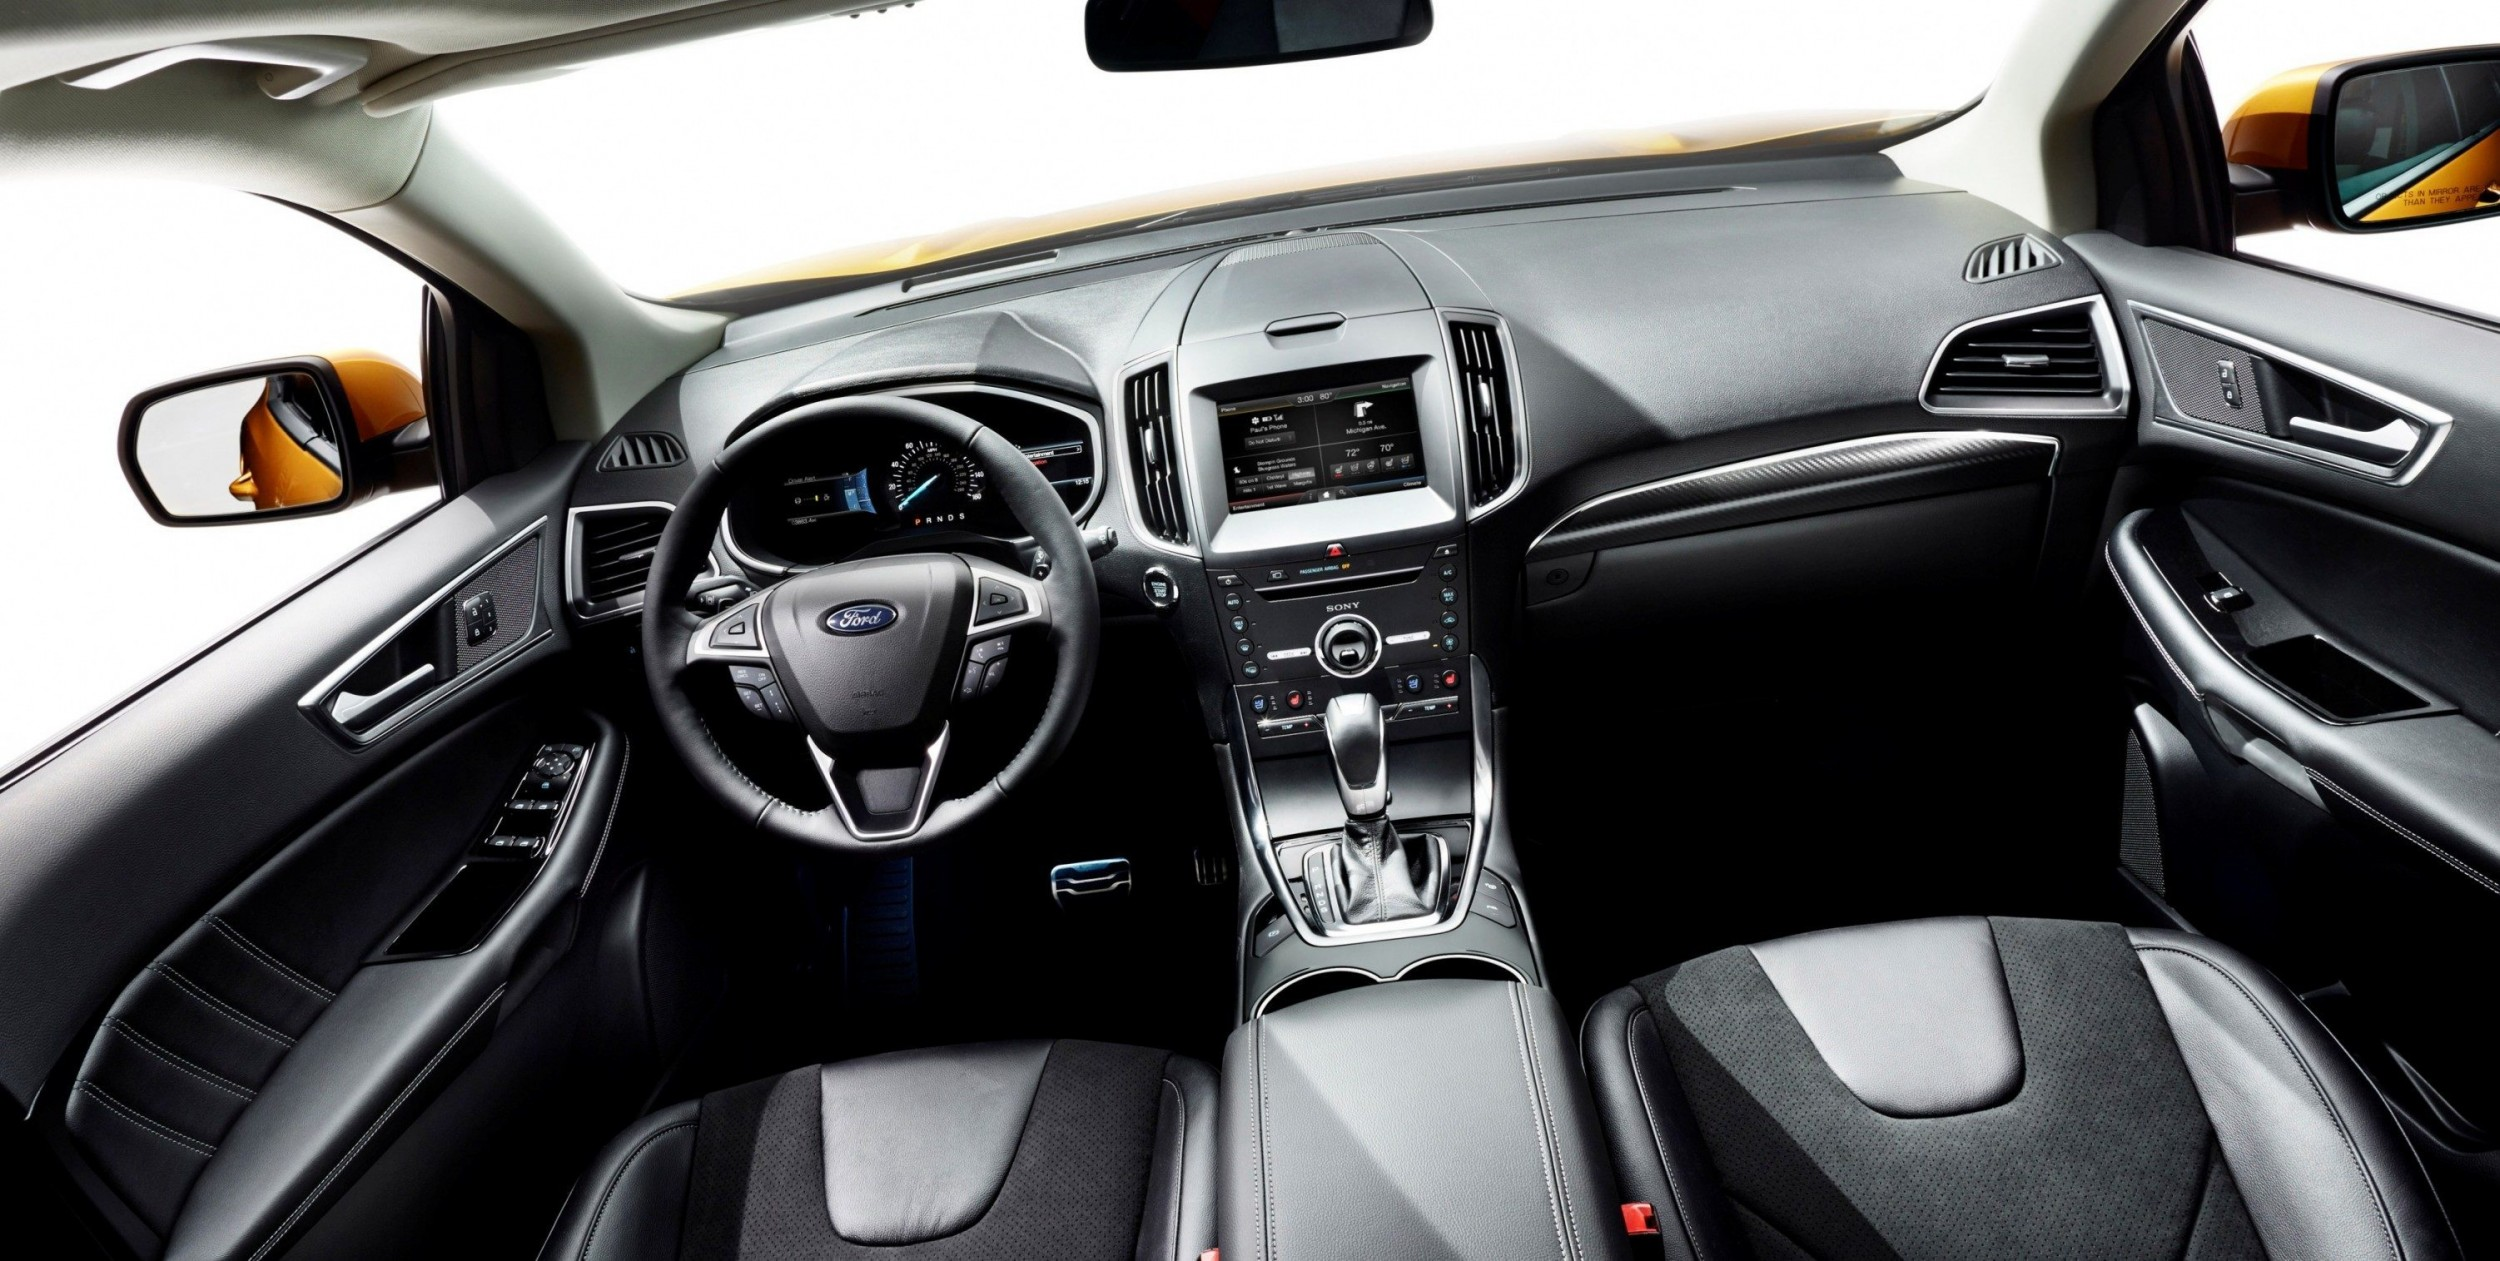 2015 Ford Edge For Sale >> 2015 Ford Edge Debut in 200+ Photos - Standard EcoBoost + Better Dynamics, Tech and Style